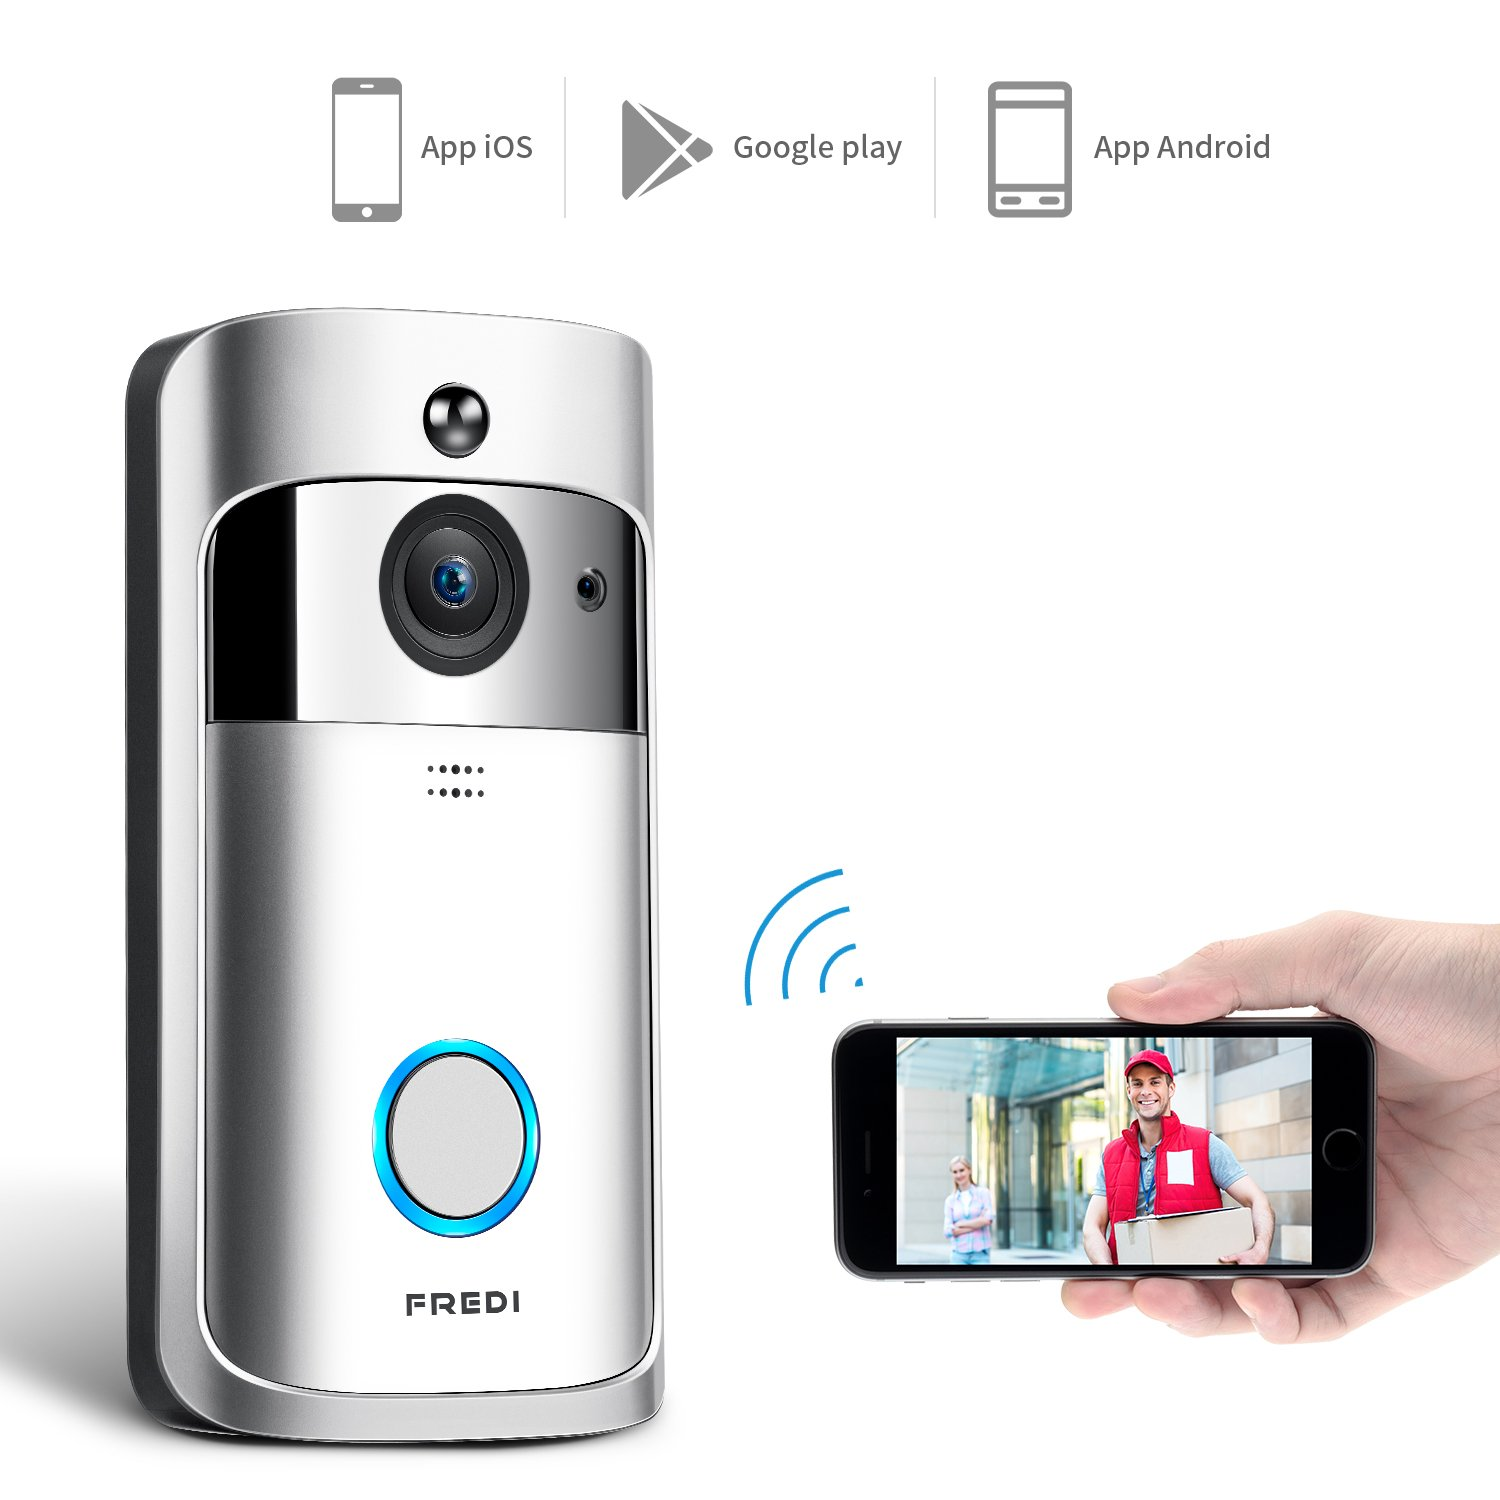 WIFI Video Doorbell, FREDI Smart Doorbell 720P HD Security Camera Real-Time Two-Way Talk and Video, Night Vision, PIR Motion Detection and App Control for IOS and Android